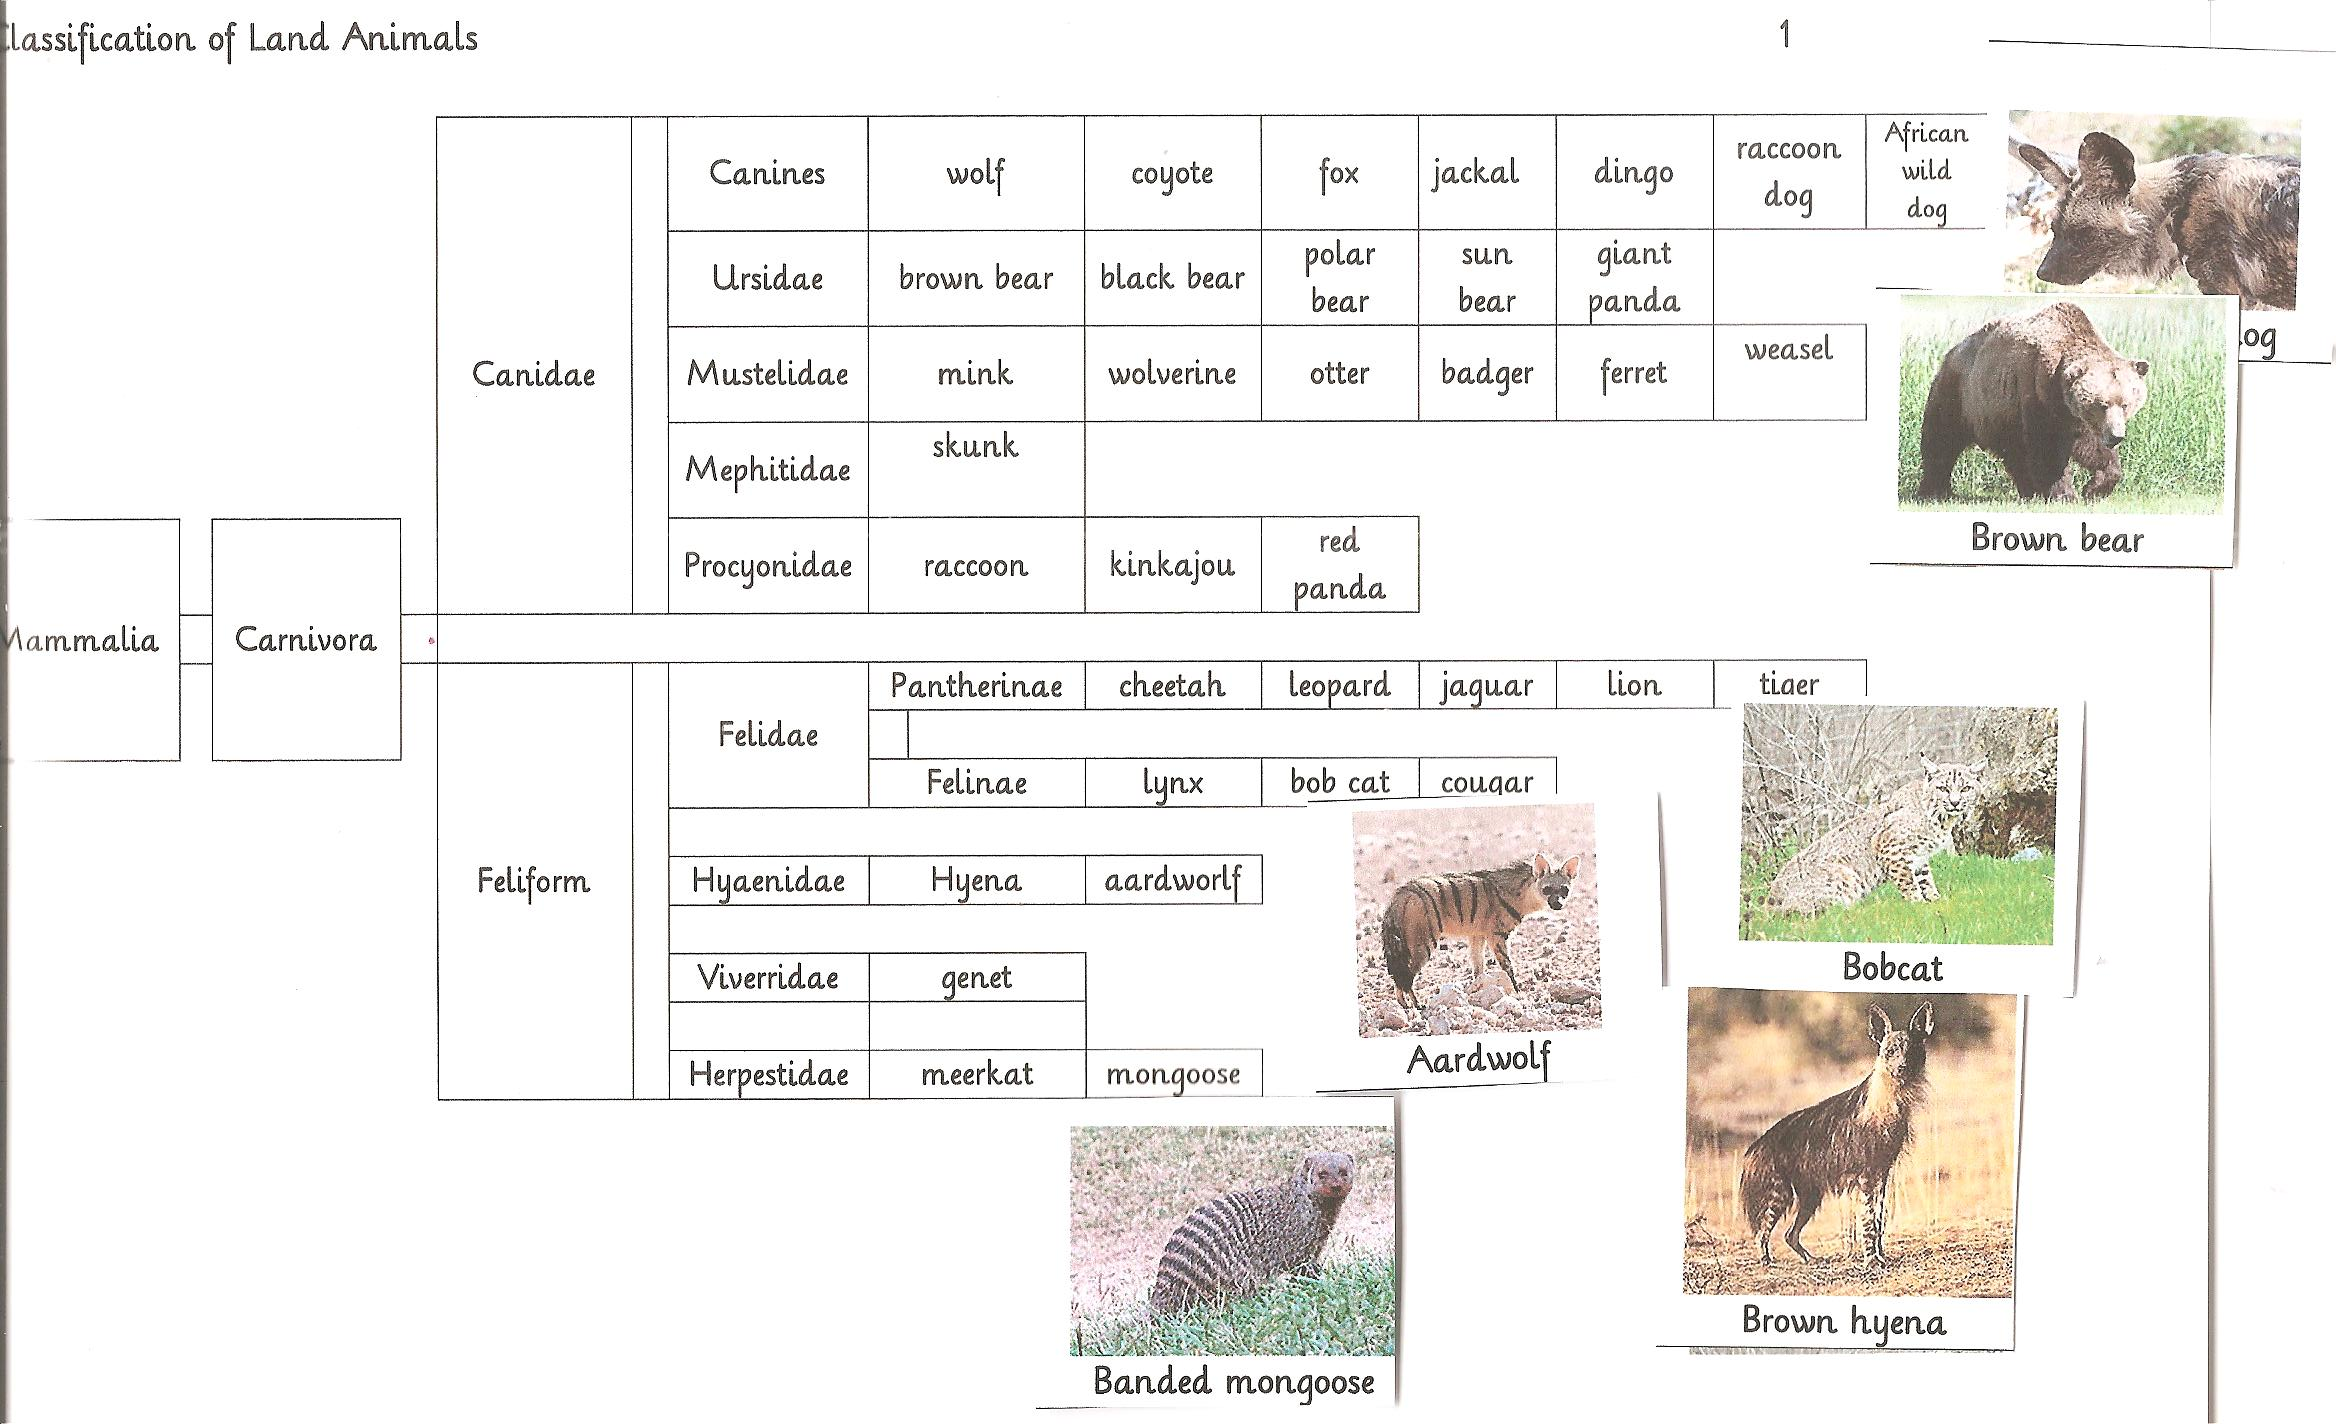 Classify Land Animals